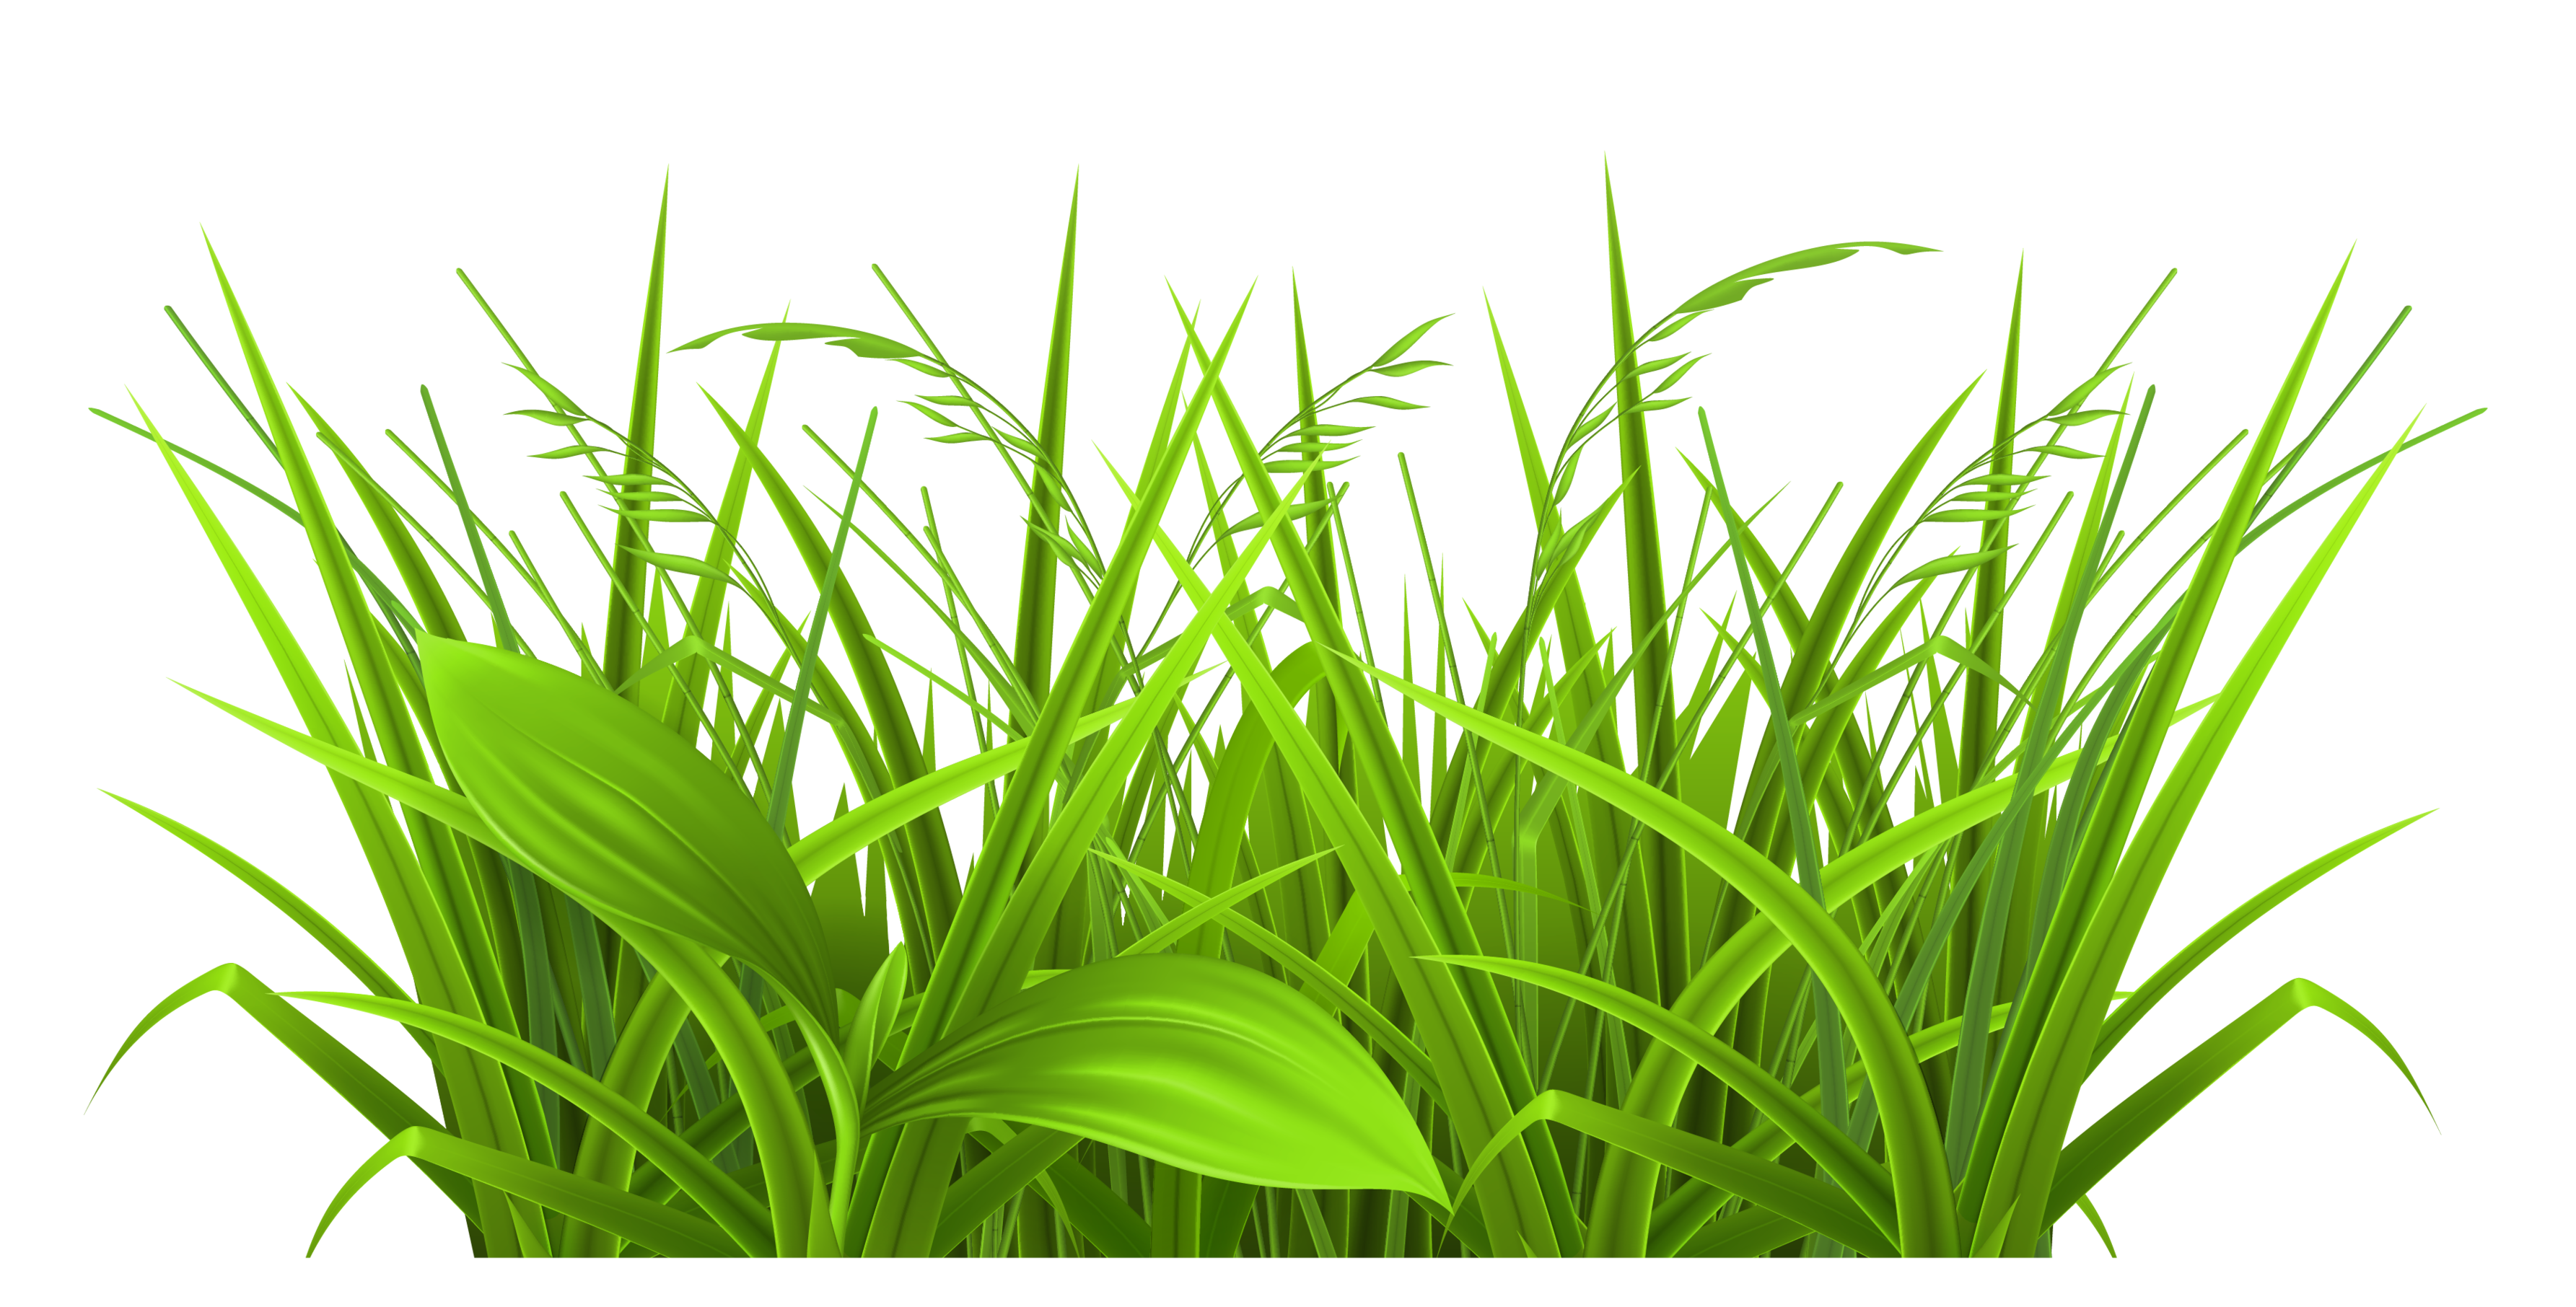 svg freeuse library Vector bushes grass. Silhouette free at getdrawings